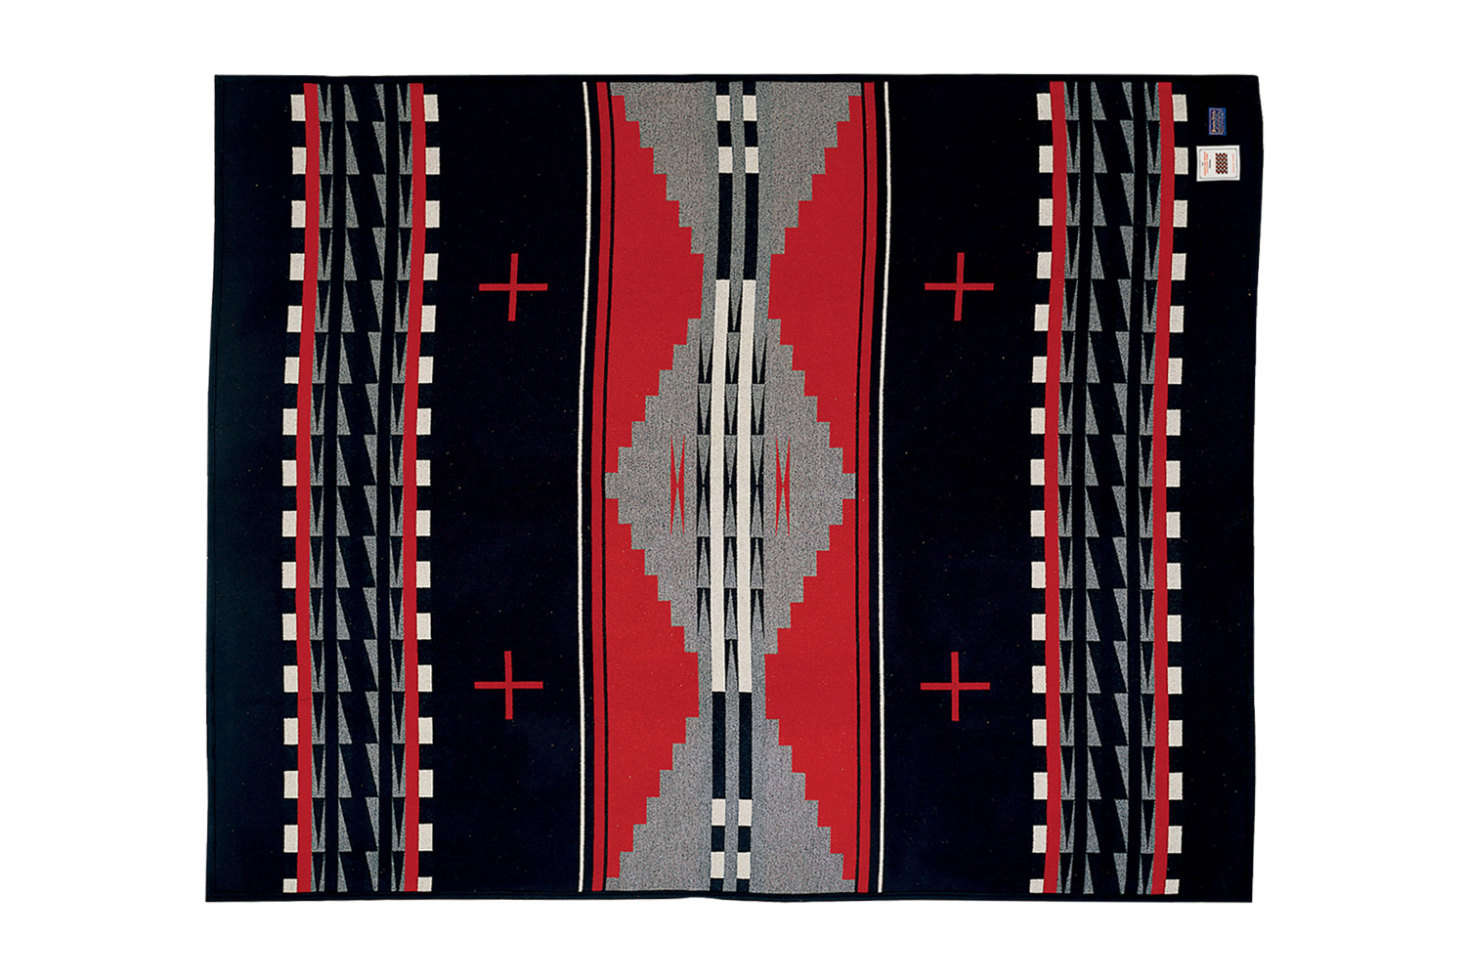 The Pendleton Earth Blanket in black multi is similar to the Pendleton blanket on the bed; $3 at Pendleton.